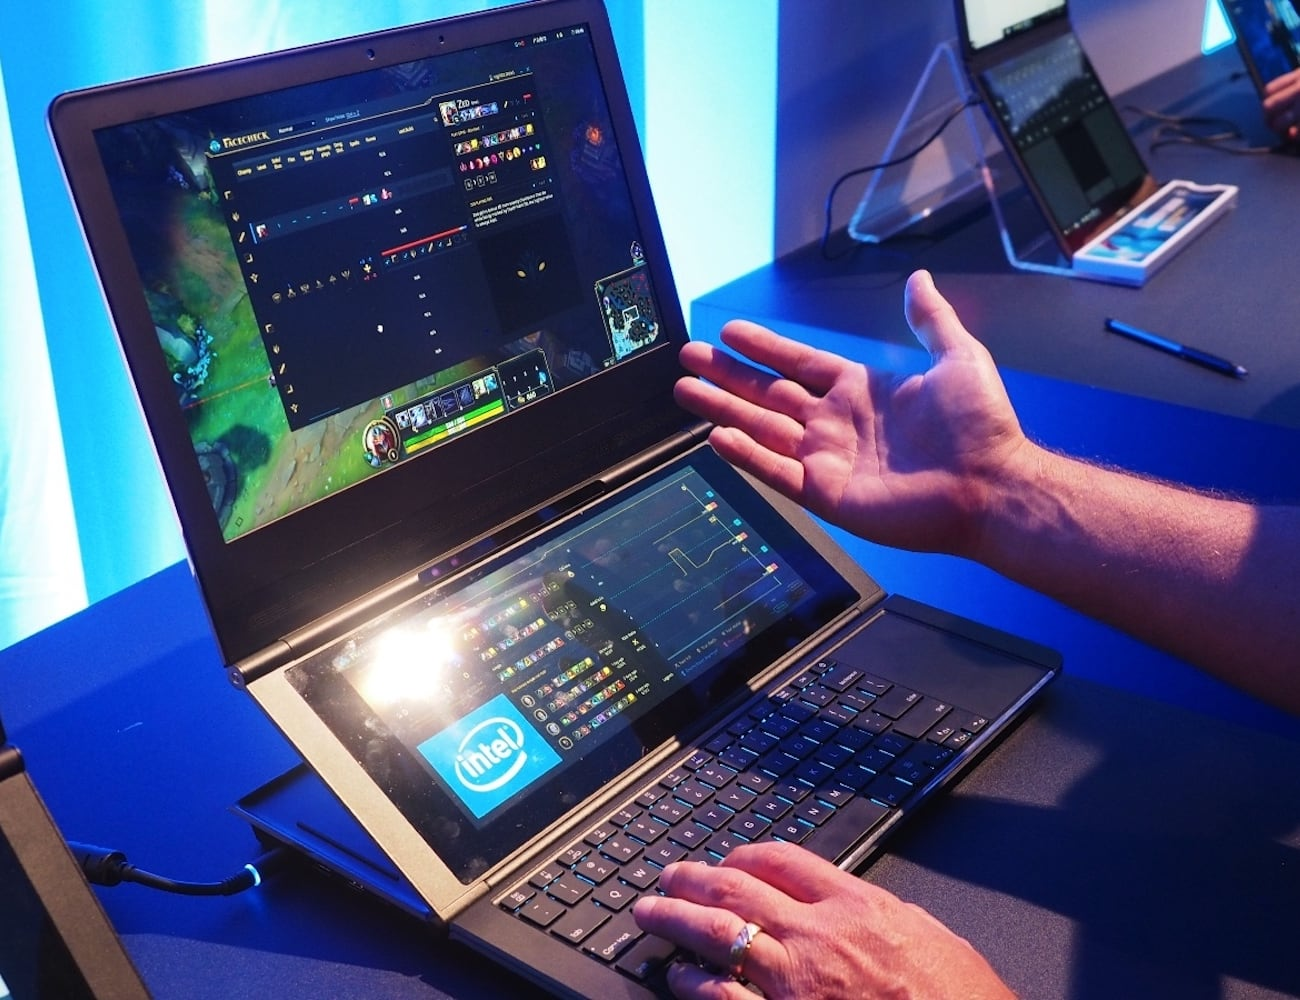 The Intel Honeycomb Glacier laptop gives you two adjustable